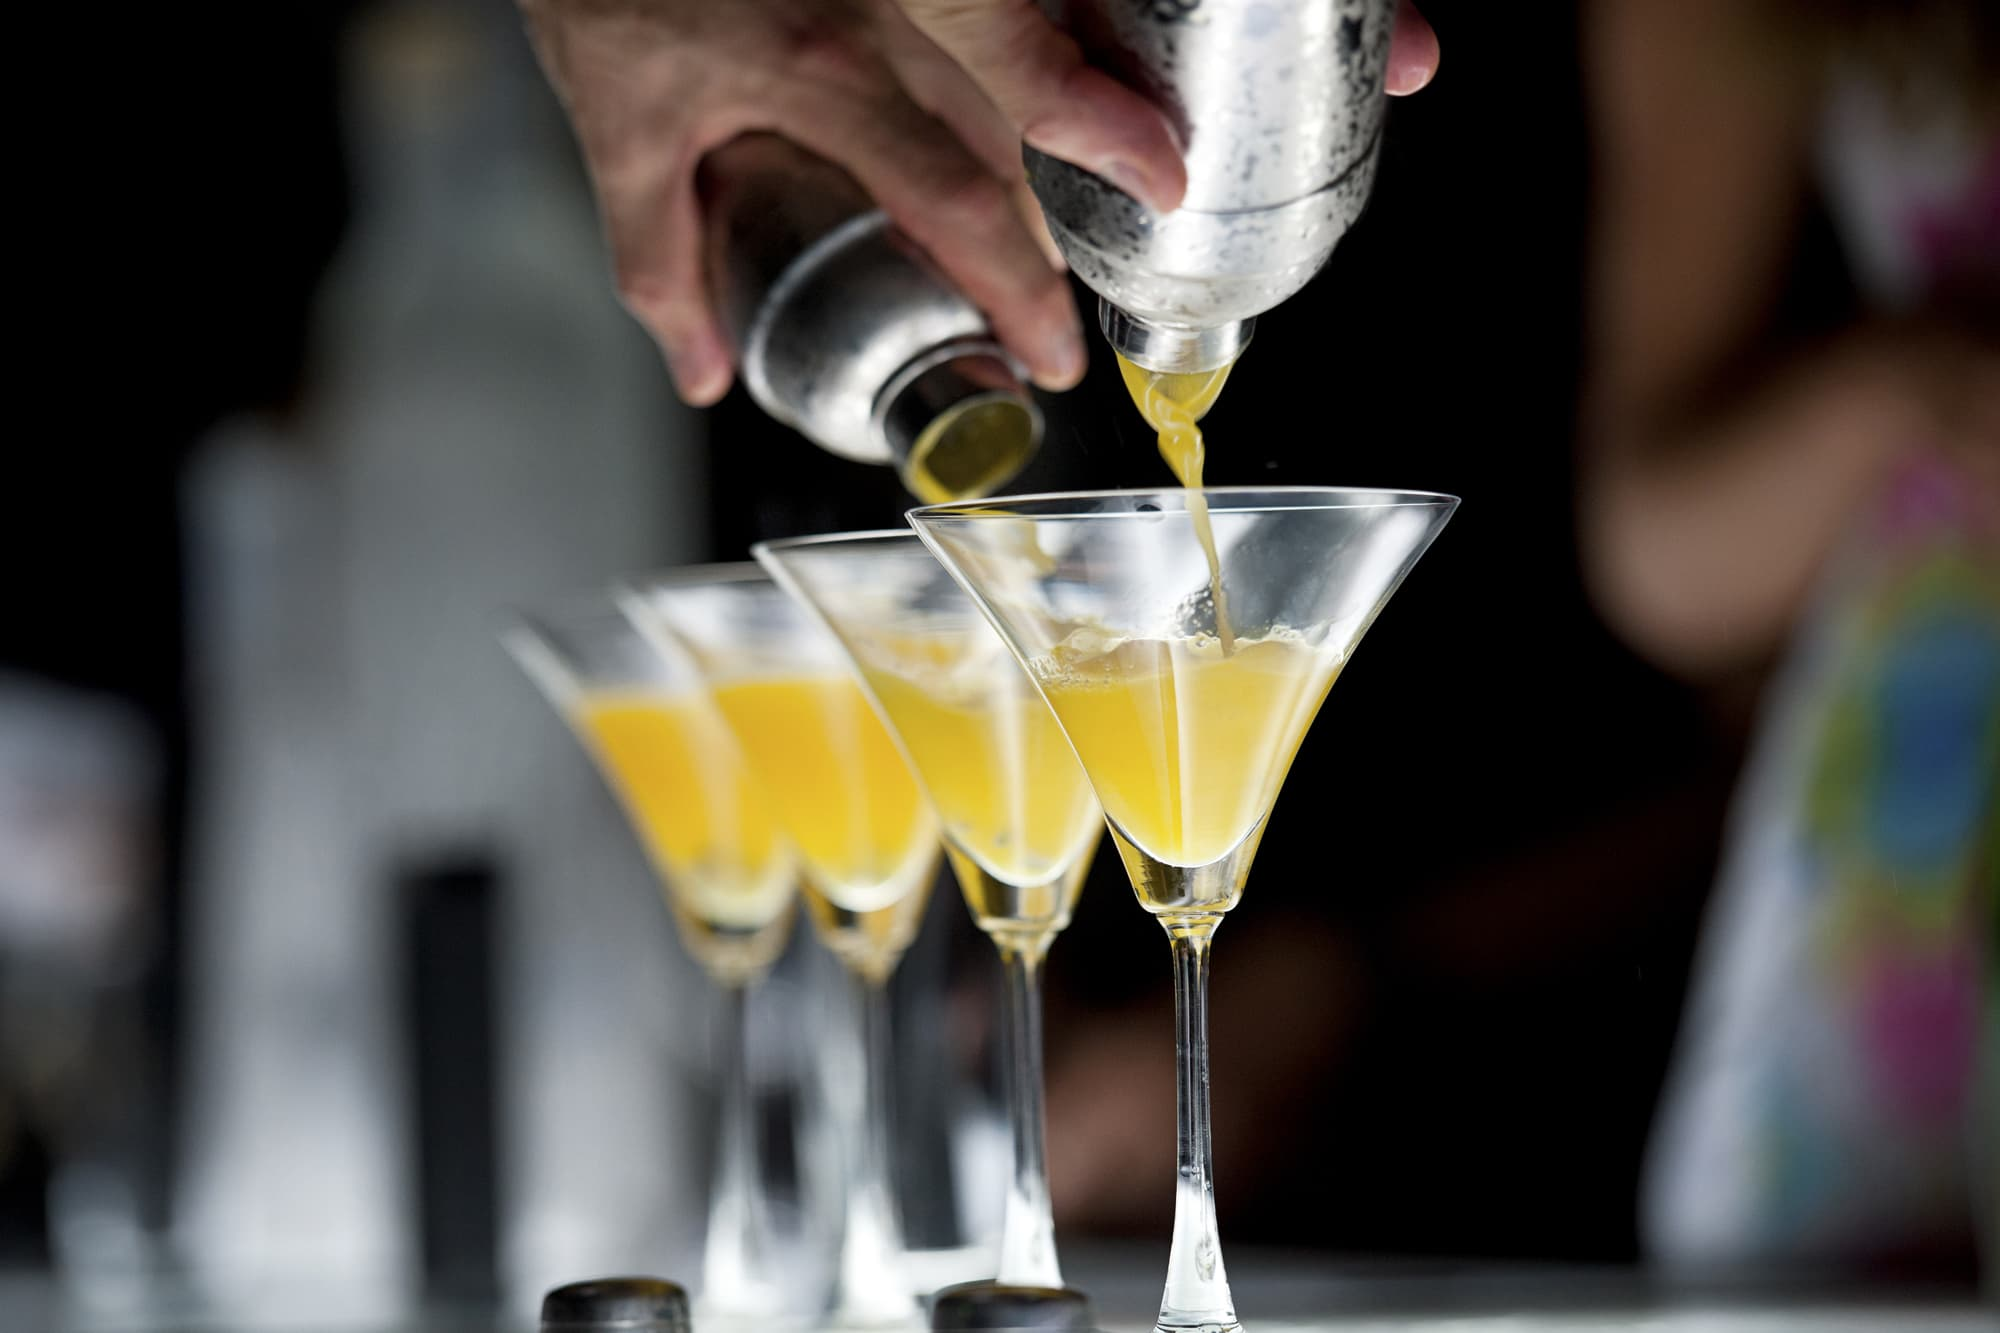 Discussion on this topic: 6 Alcoholic Drinks That Won't Ruin Your , 6-alcoholic-drinks-that-wont-ruin-your/